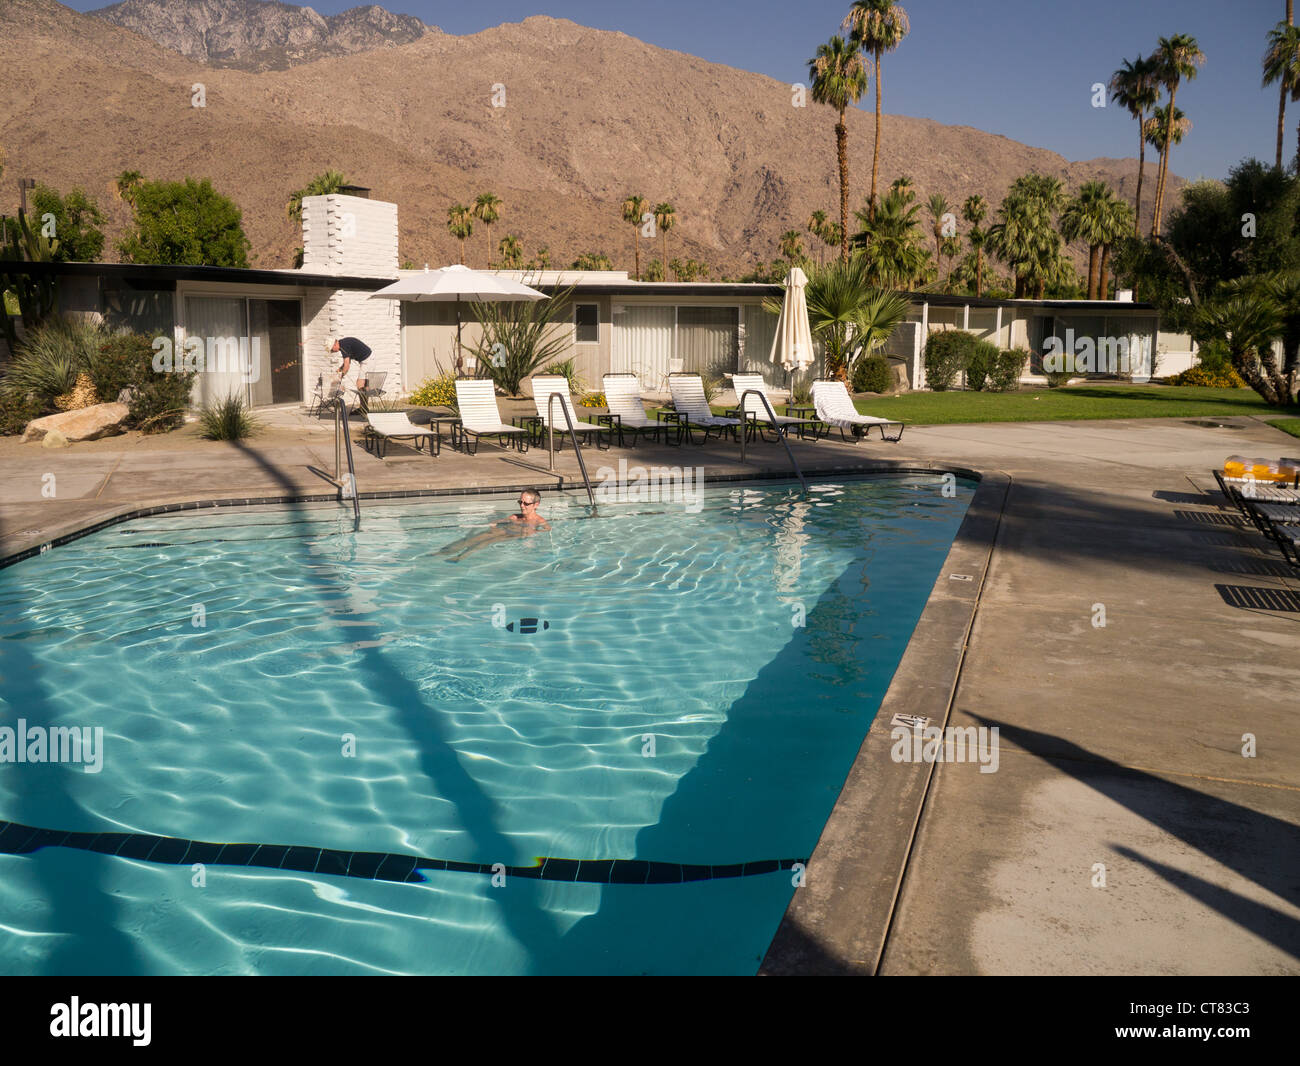 L'Horizon Hotel à Palm Springs, conçu par William Cody pour Jack Wrather en 1952. C'est maintenant Photo Stock